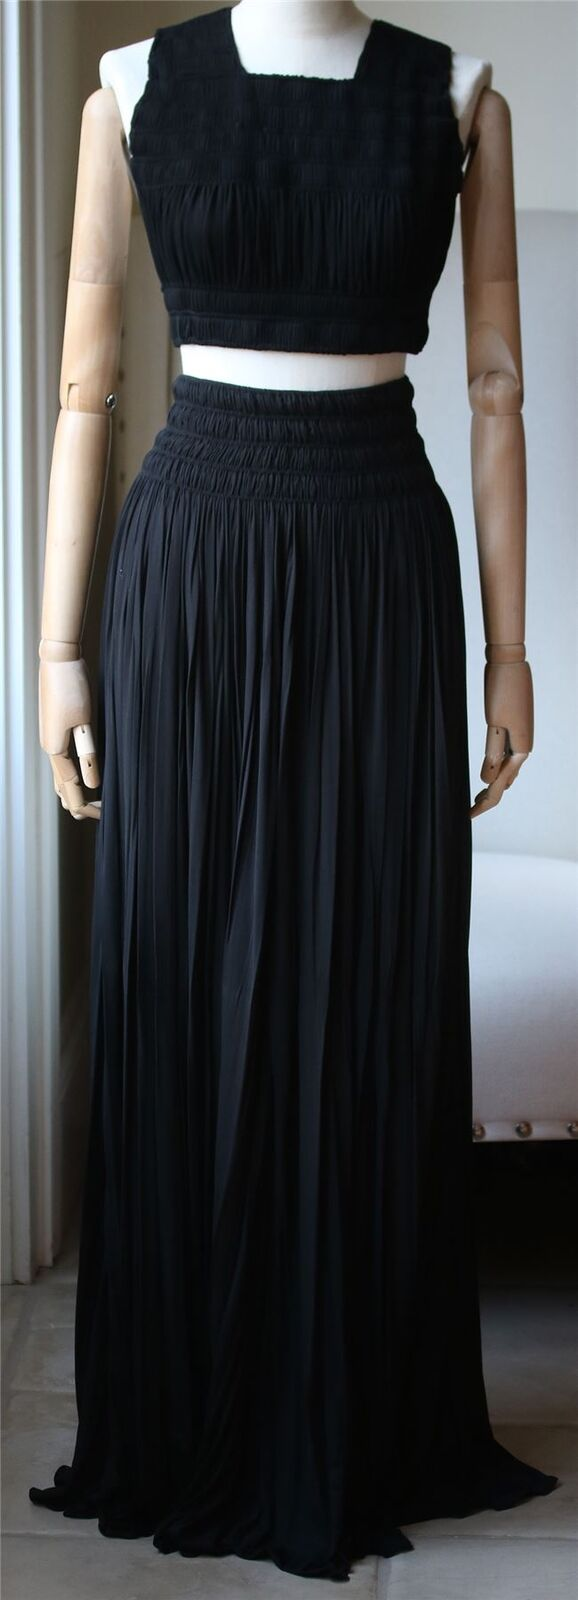 AZZEDINE ALAIA RUCHED PLEATED TOP AND SKIRT UK 8